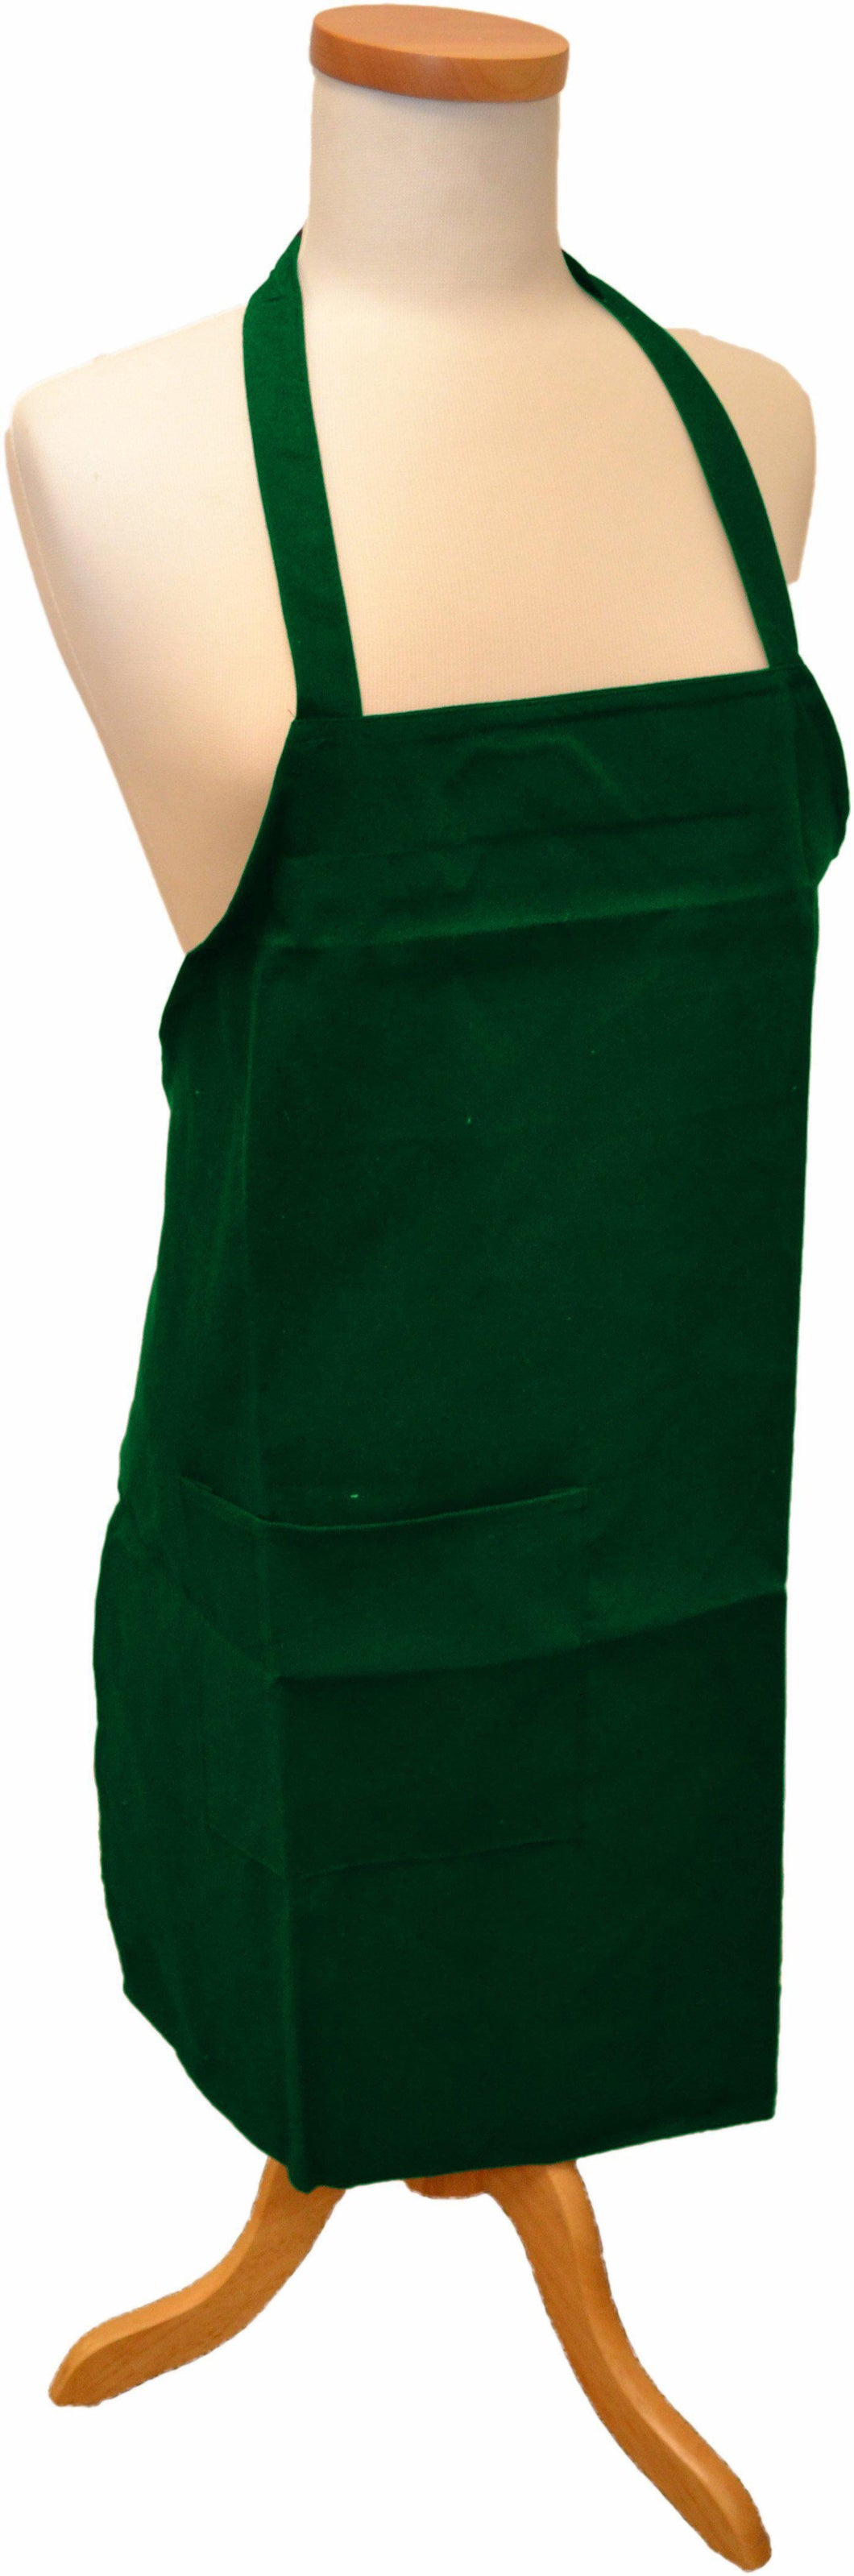 Hunter Green Bib Apron